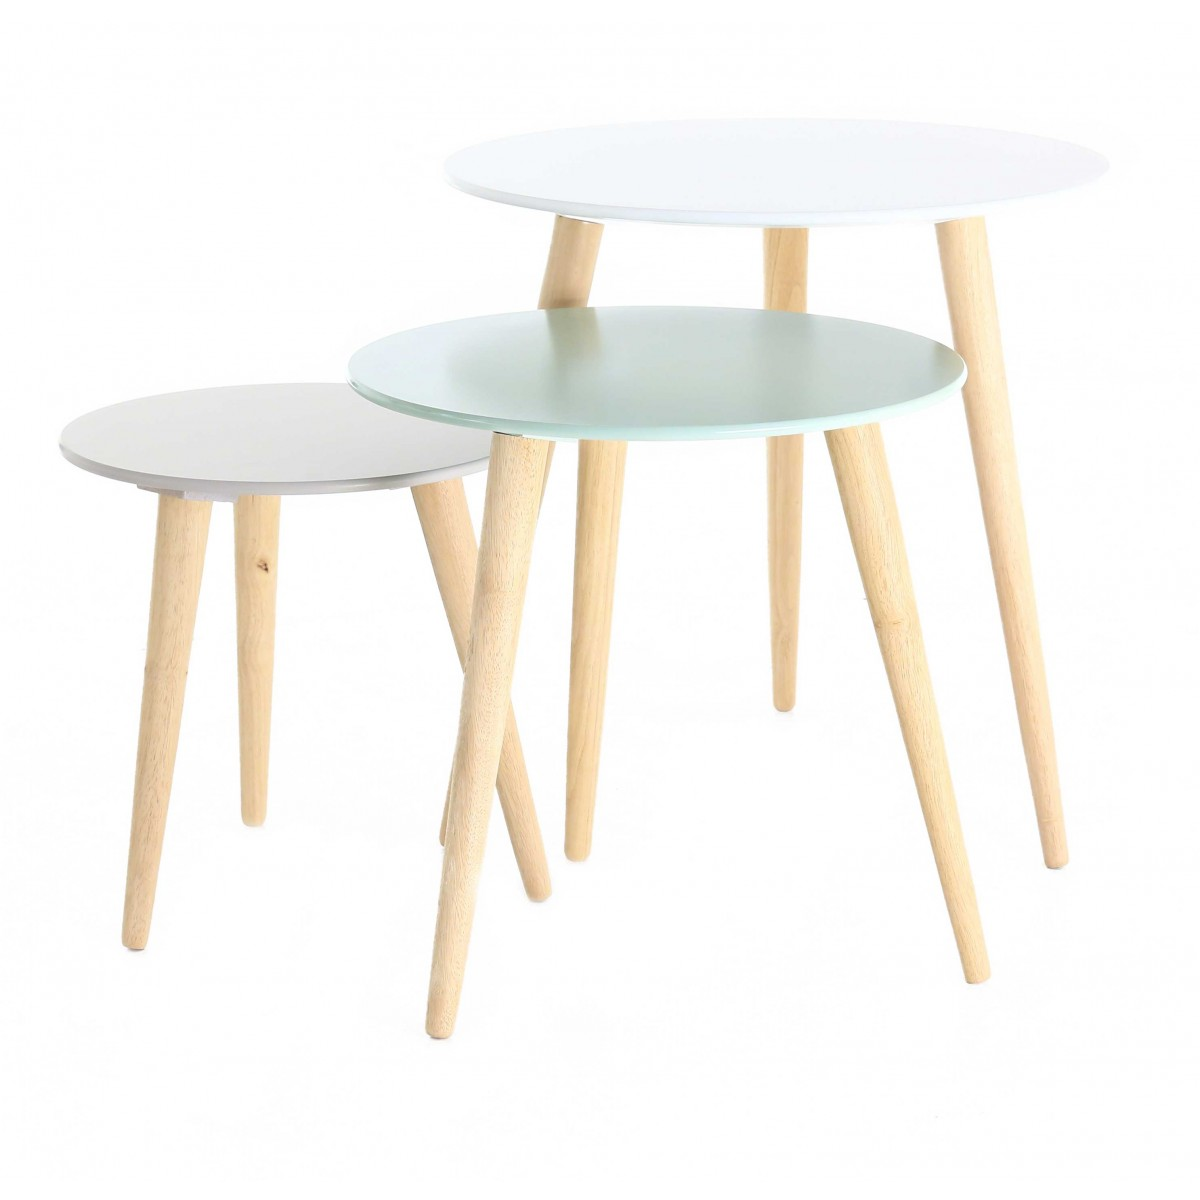 Table basse scandinave vert - Table basse scandinave gigogne ...